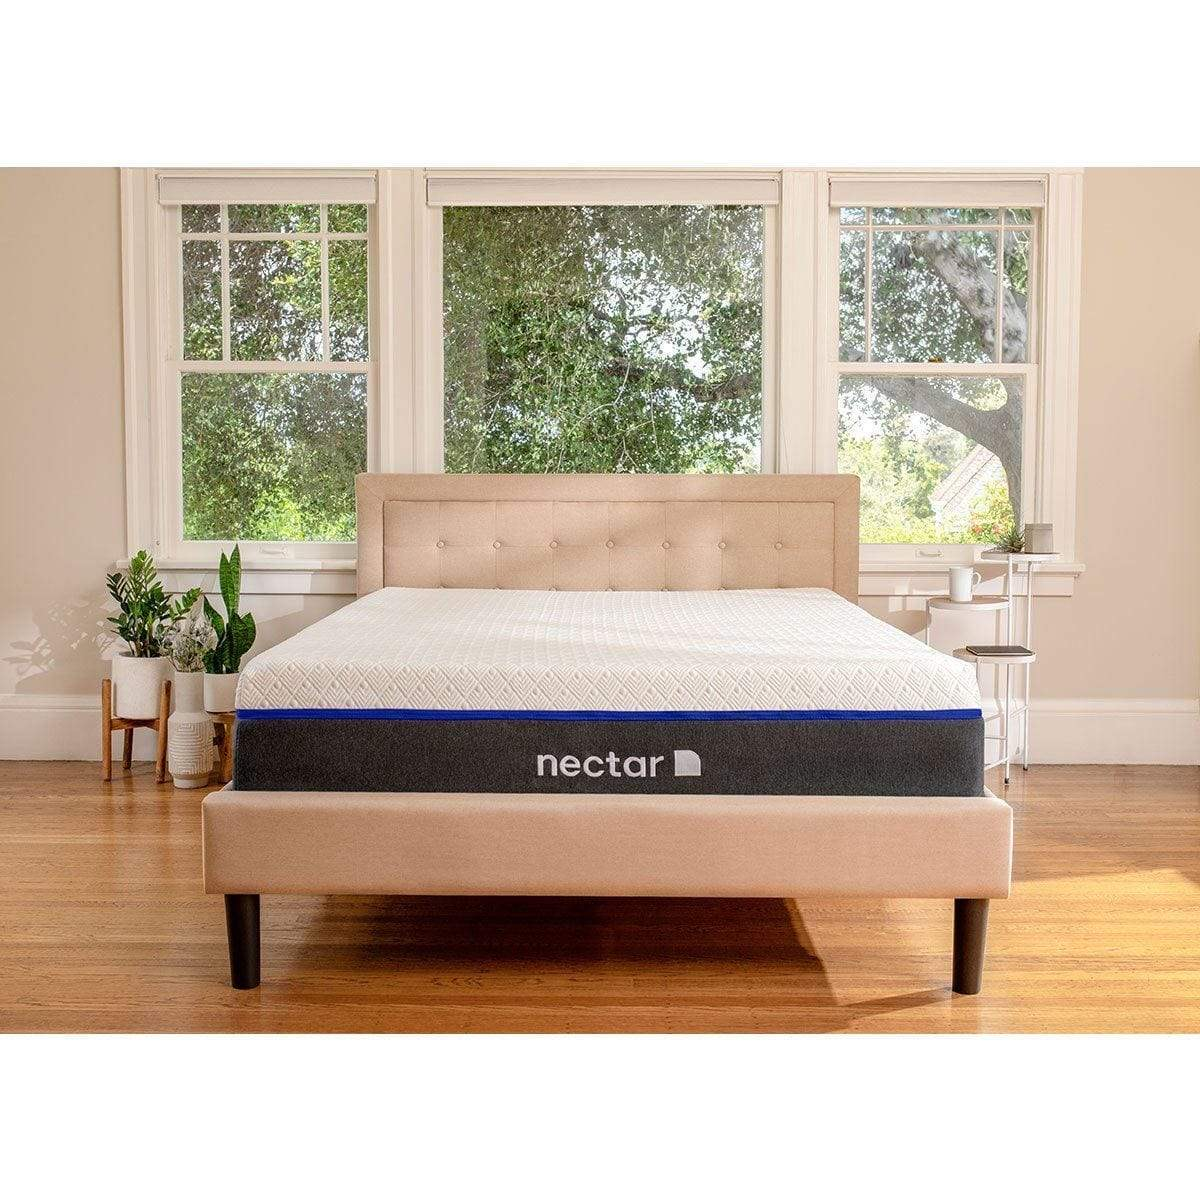 nectar matress